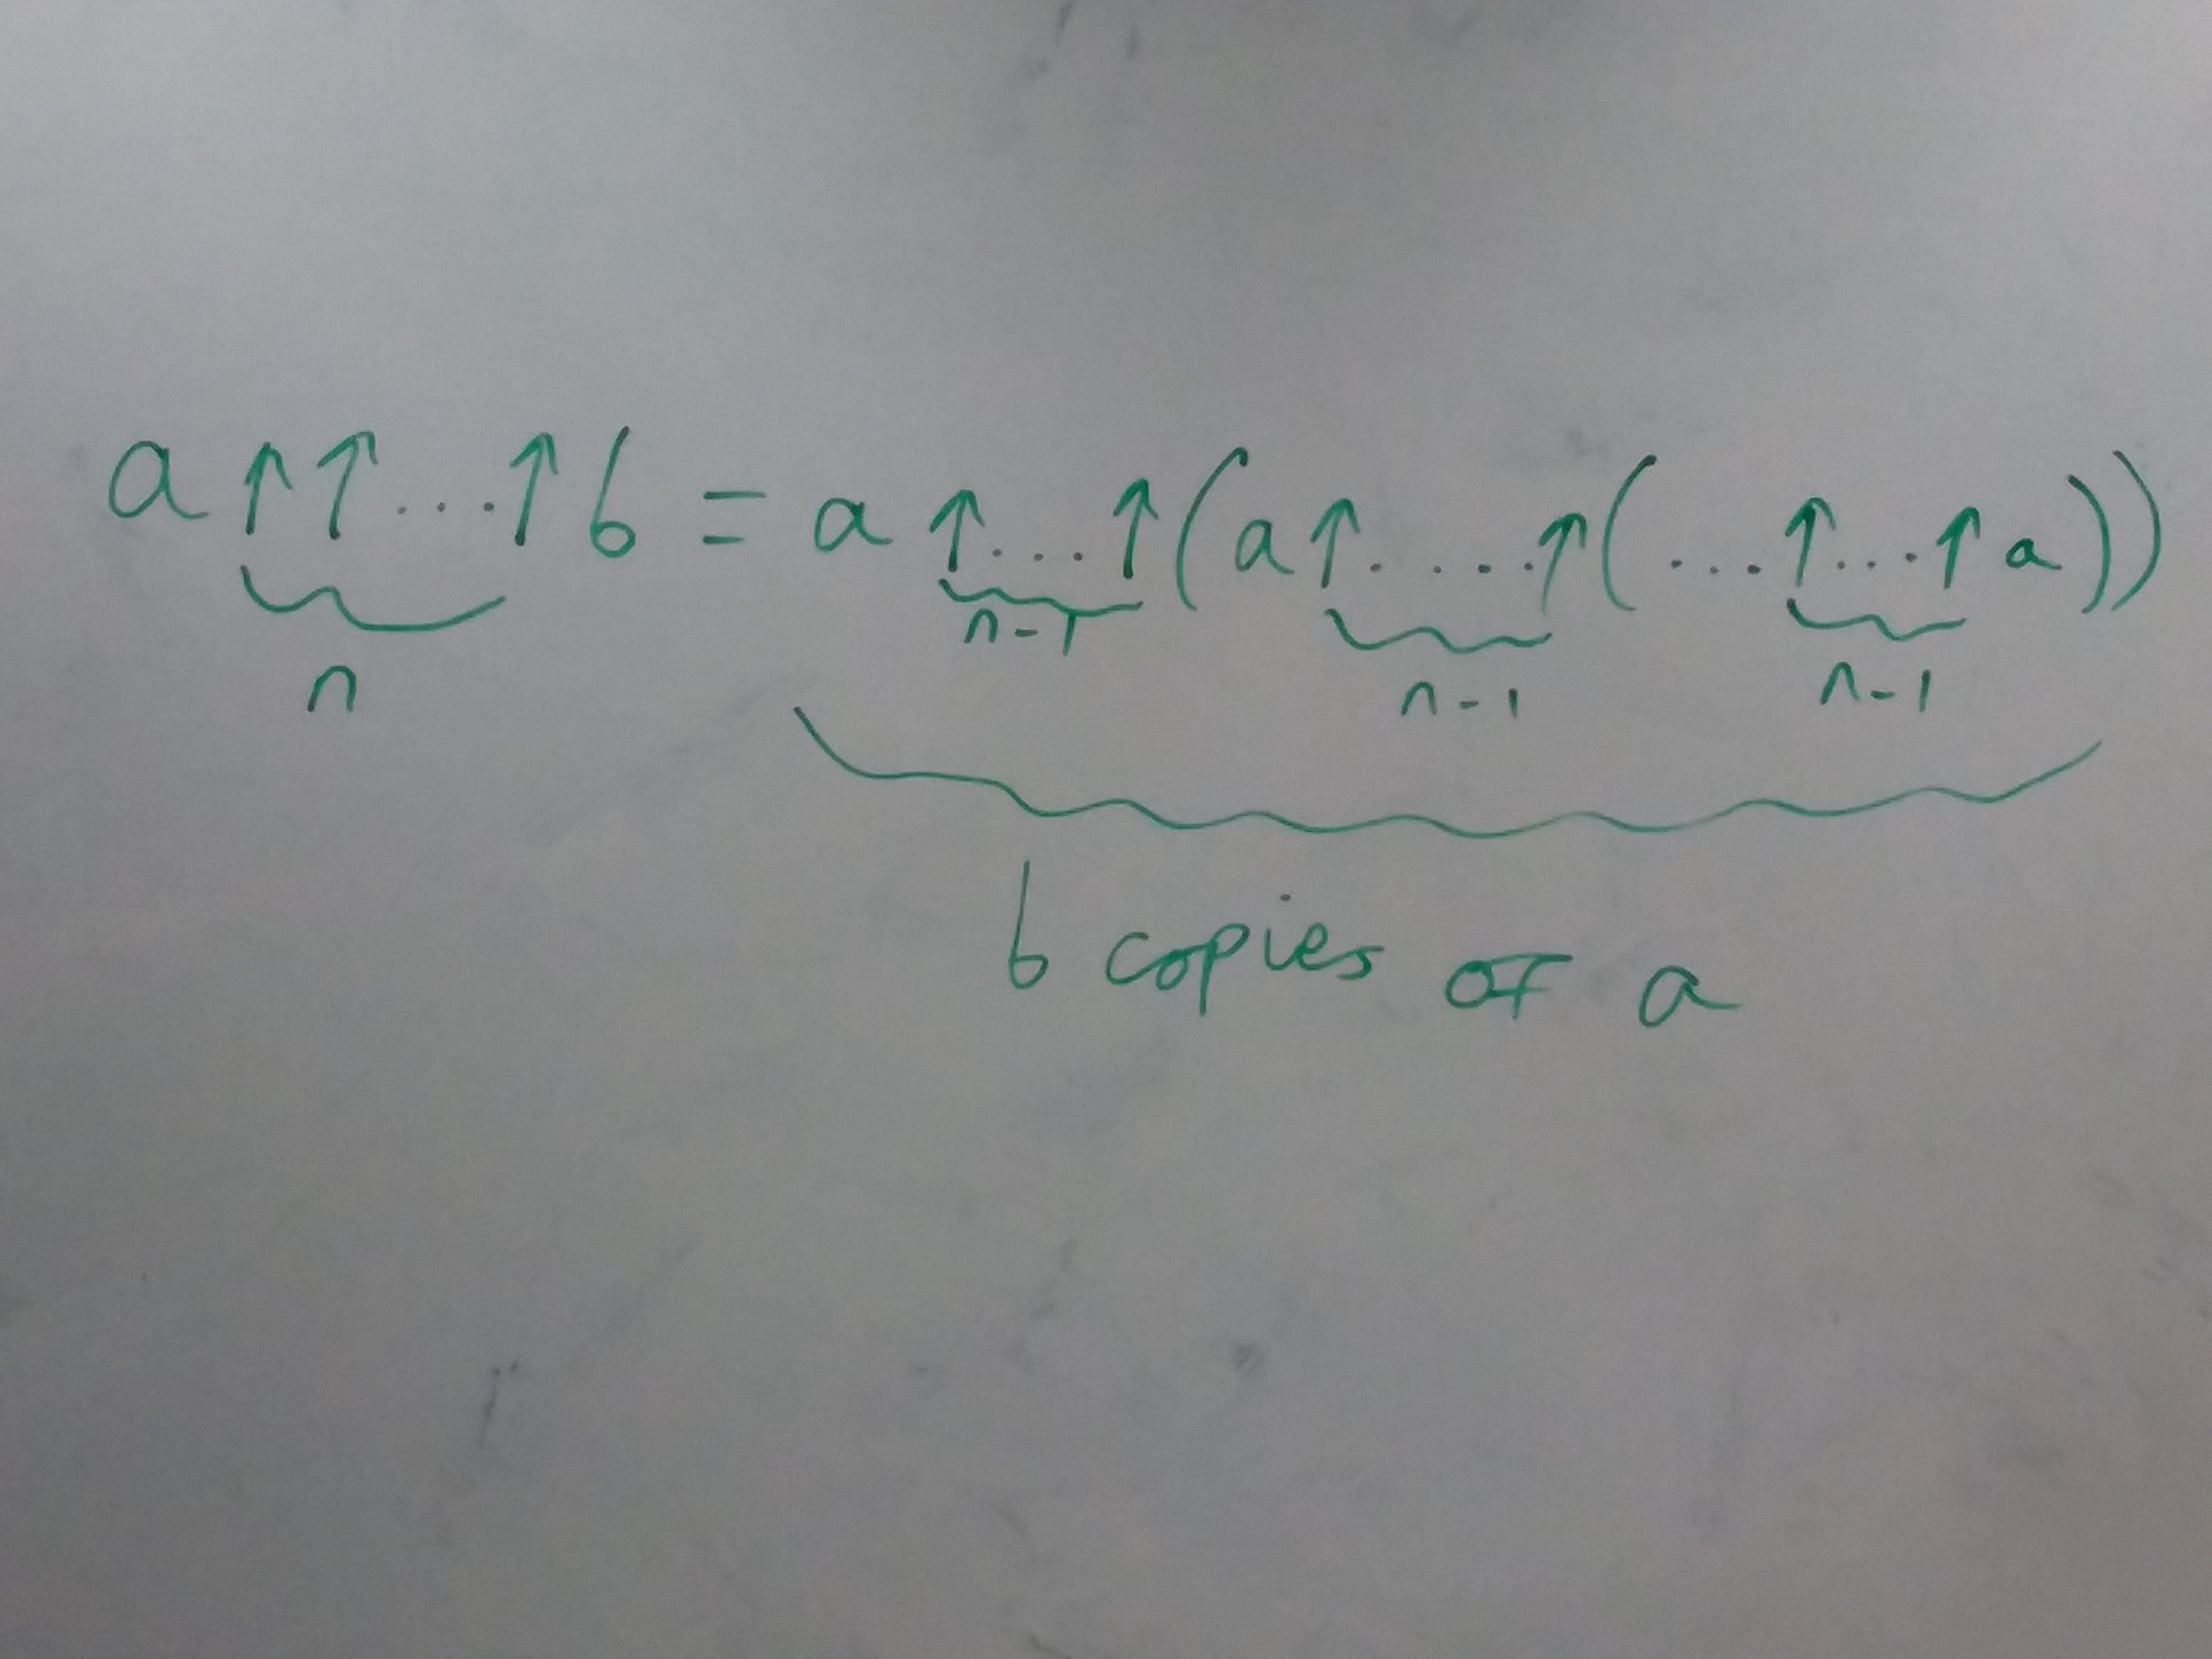 An iterative formula for the general form